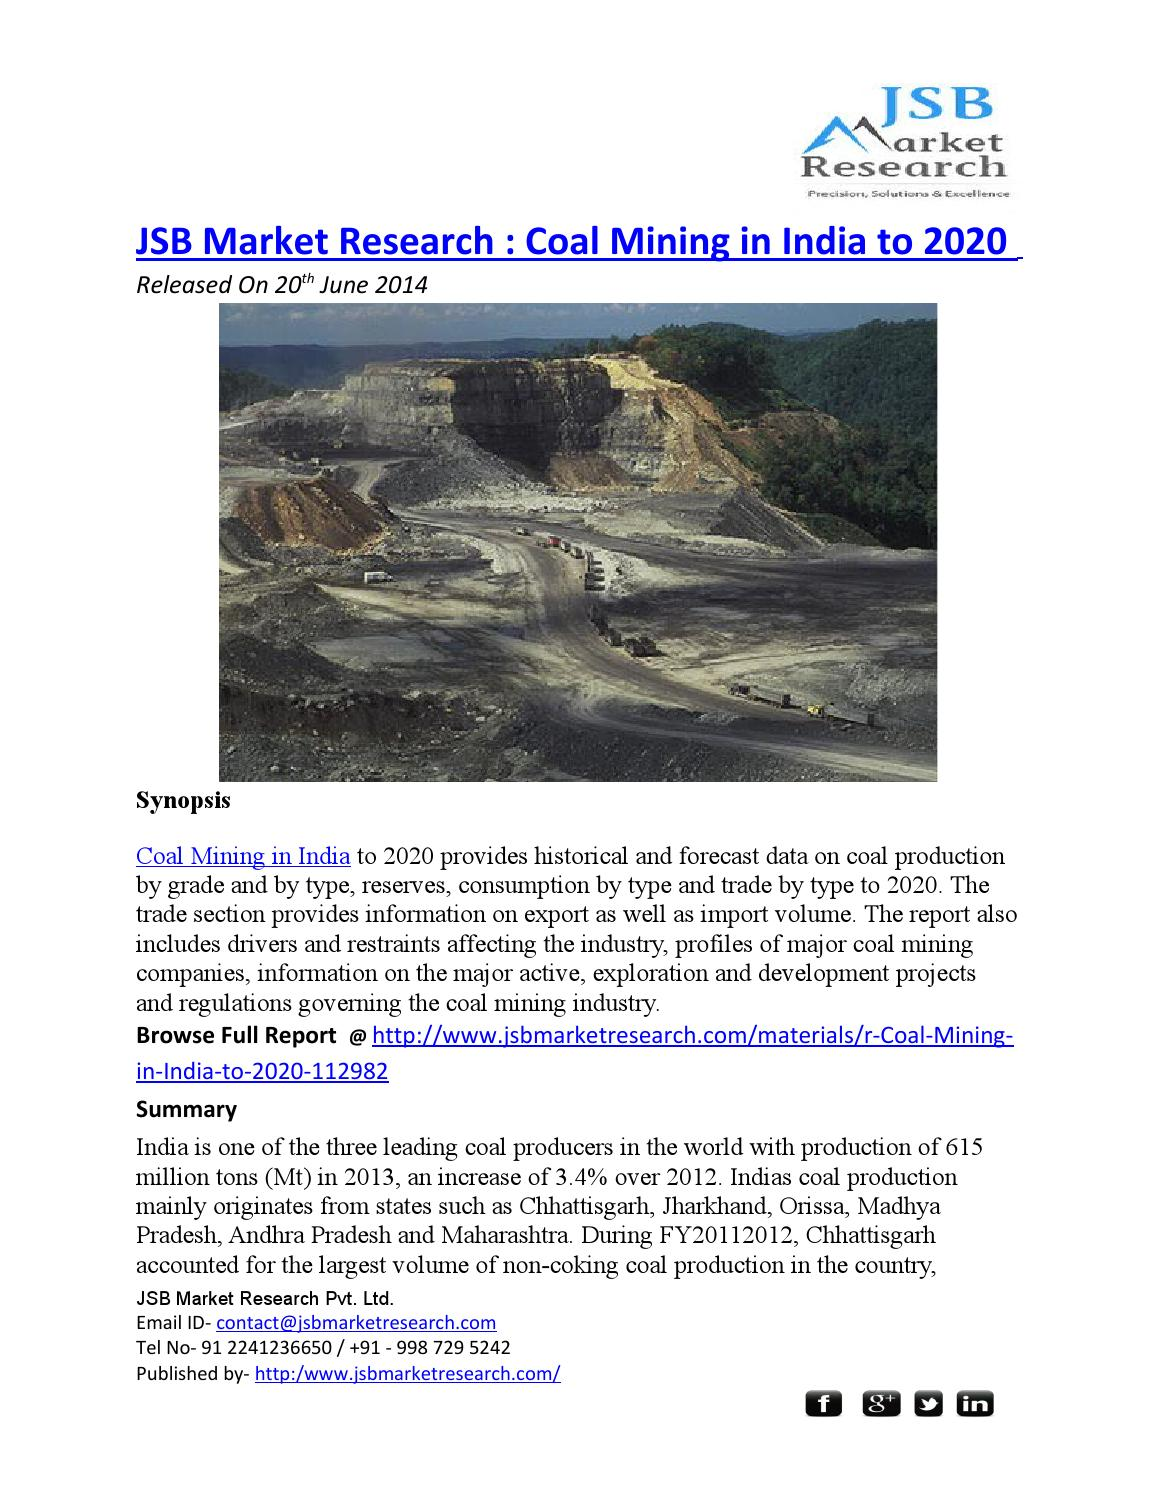 2020 india coal mining industry forecast 3 coal mining in indonesia to 2020 scope the report contains an overview of the indonesian coal mining industry, together with its key growth factors and restraints.